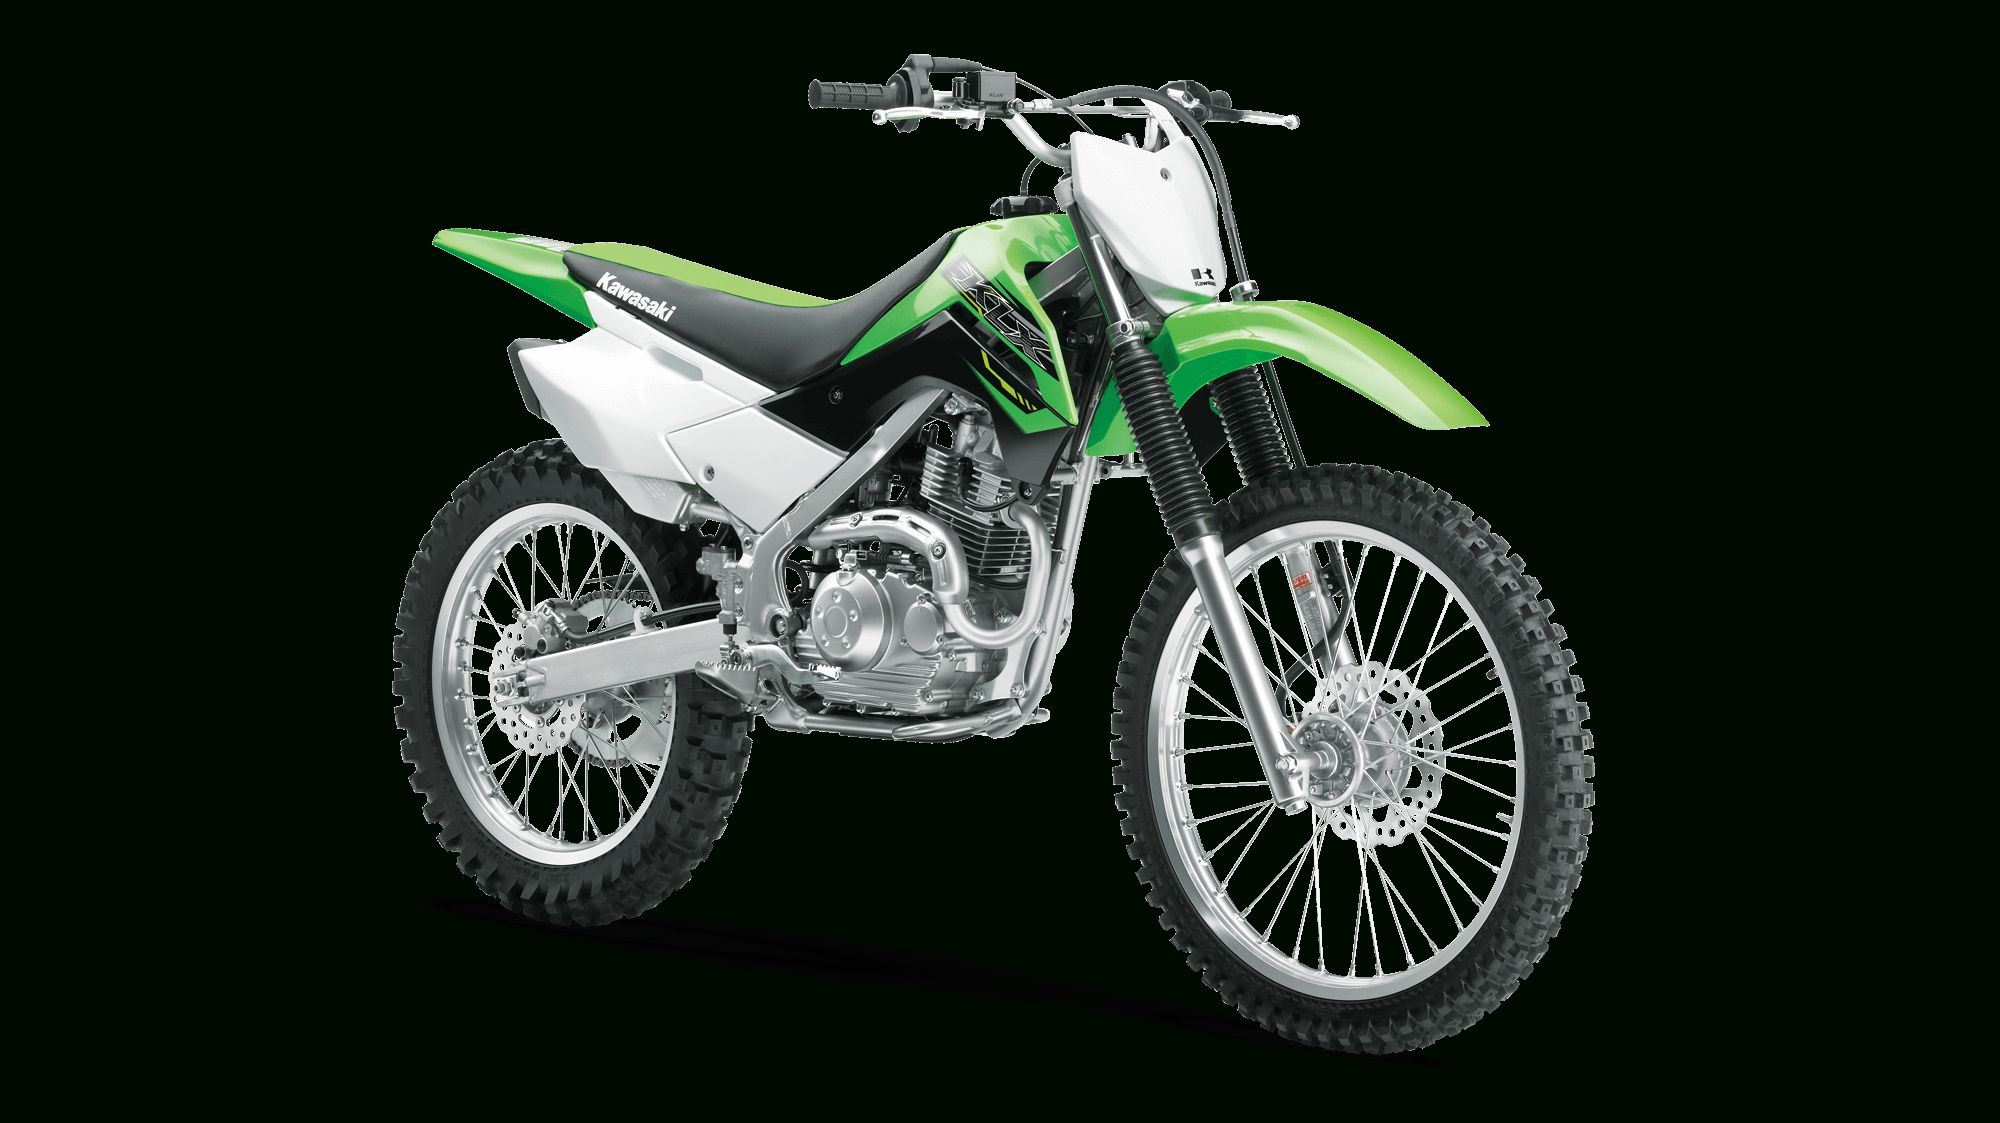 2019 Kawasaki Klx 550 Specs And Review From 2019 Klx140g Klrklx